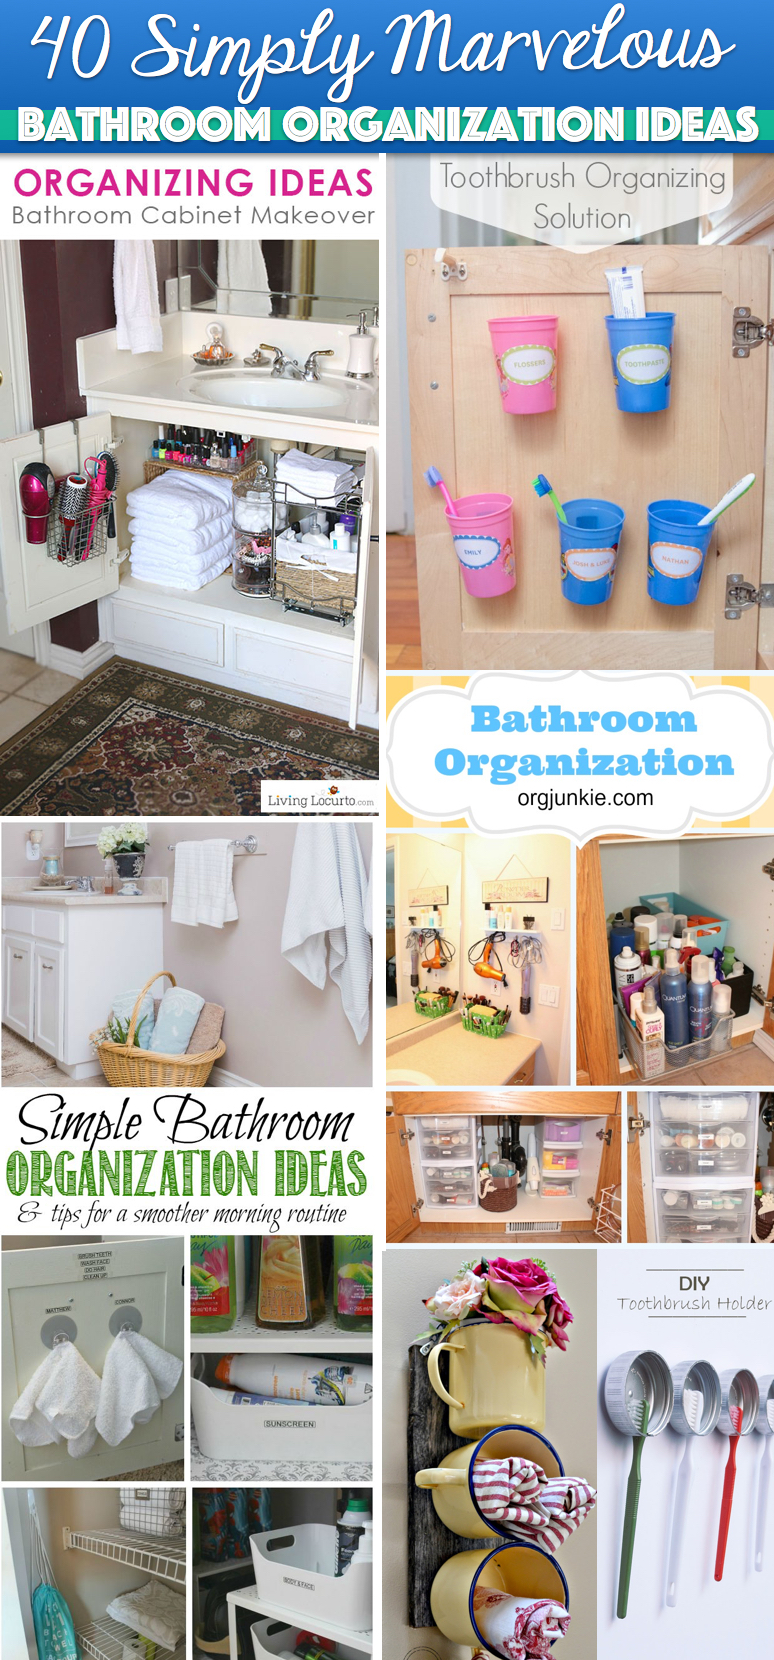 40 simply marvelous bathroom organization ideas to get rid of all